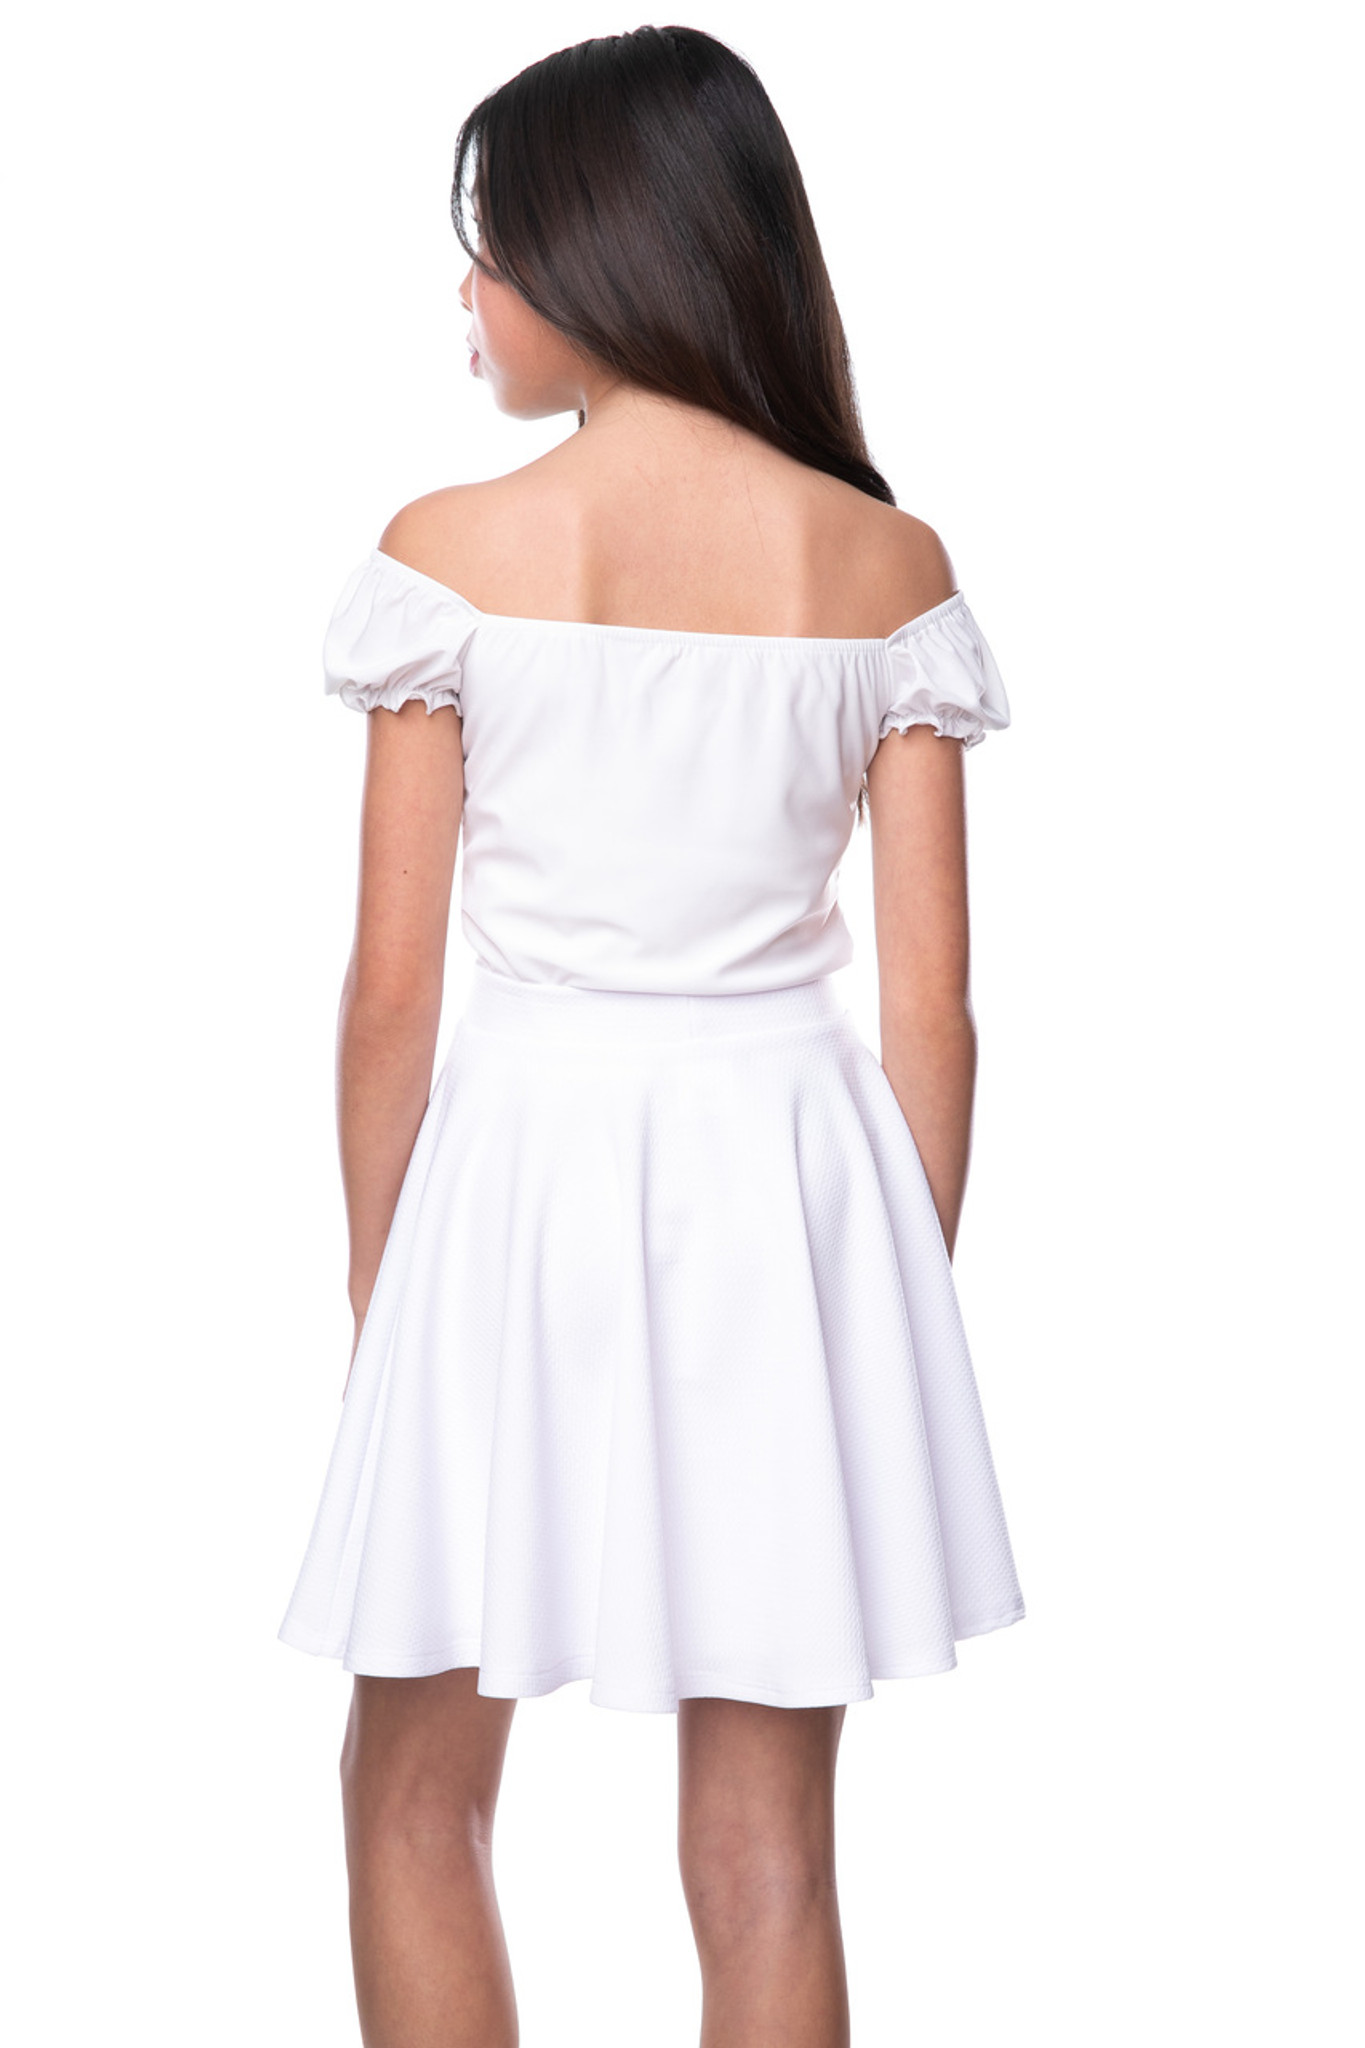 Tween Girls White Textured Skater Skirt in Longer Length